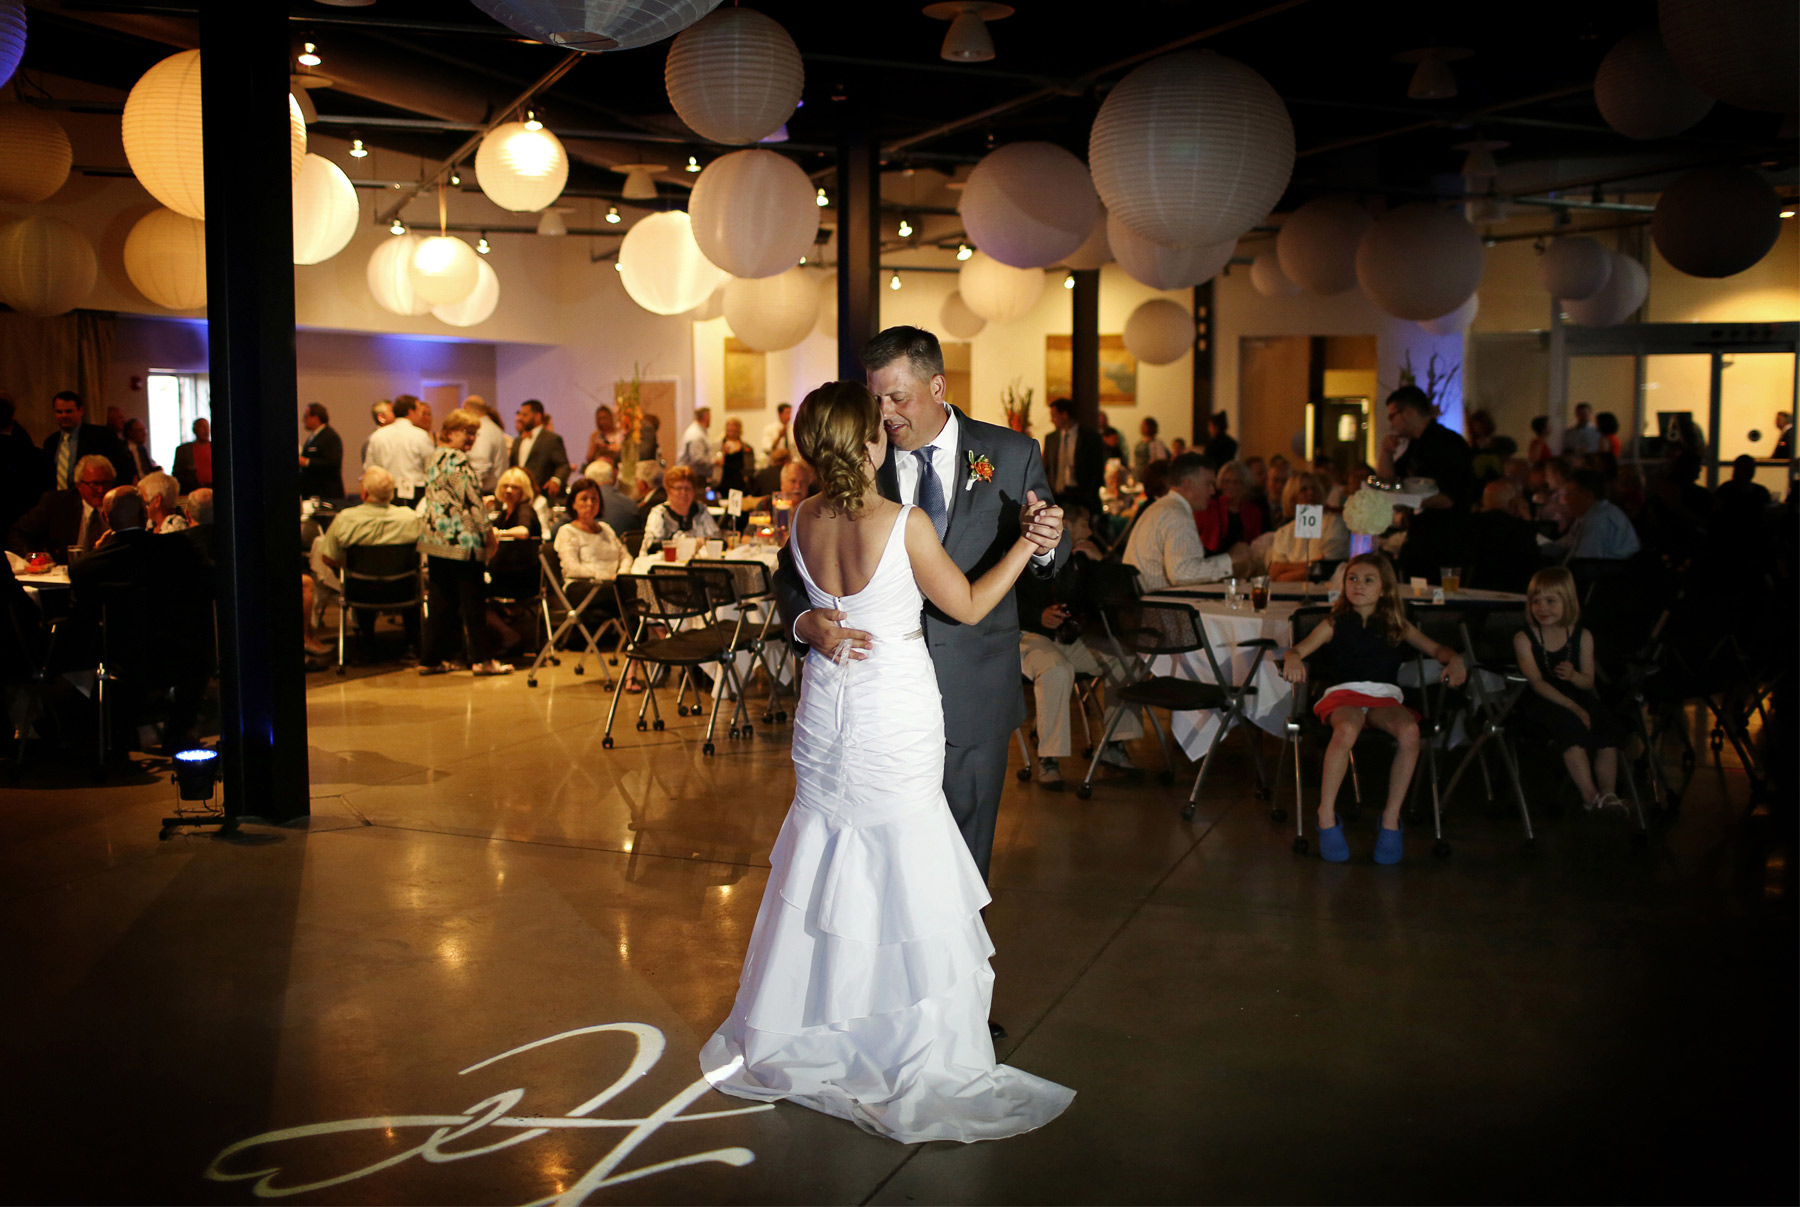 17-Des-Moines-Iowa-Wedding-Photography-by-Vick-Photography--Embassy-Club-West-Reception-First-Dance-Lindsay-&-Chad.jpg